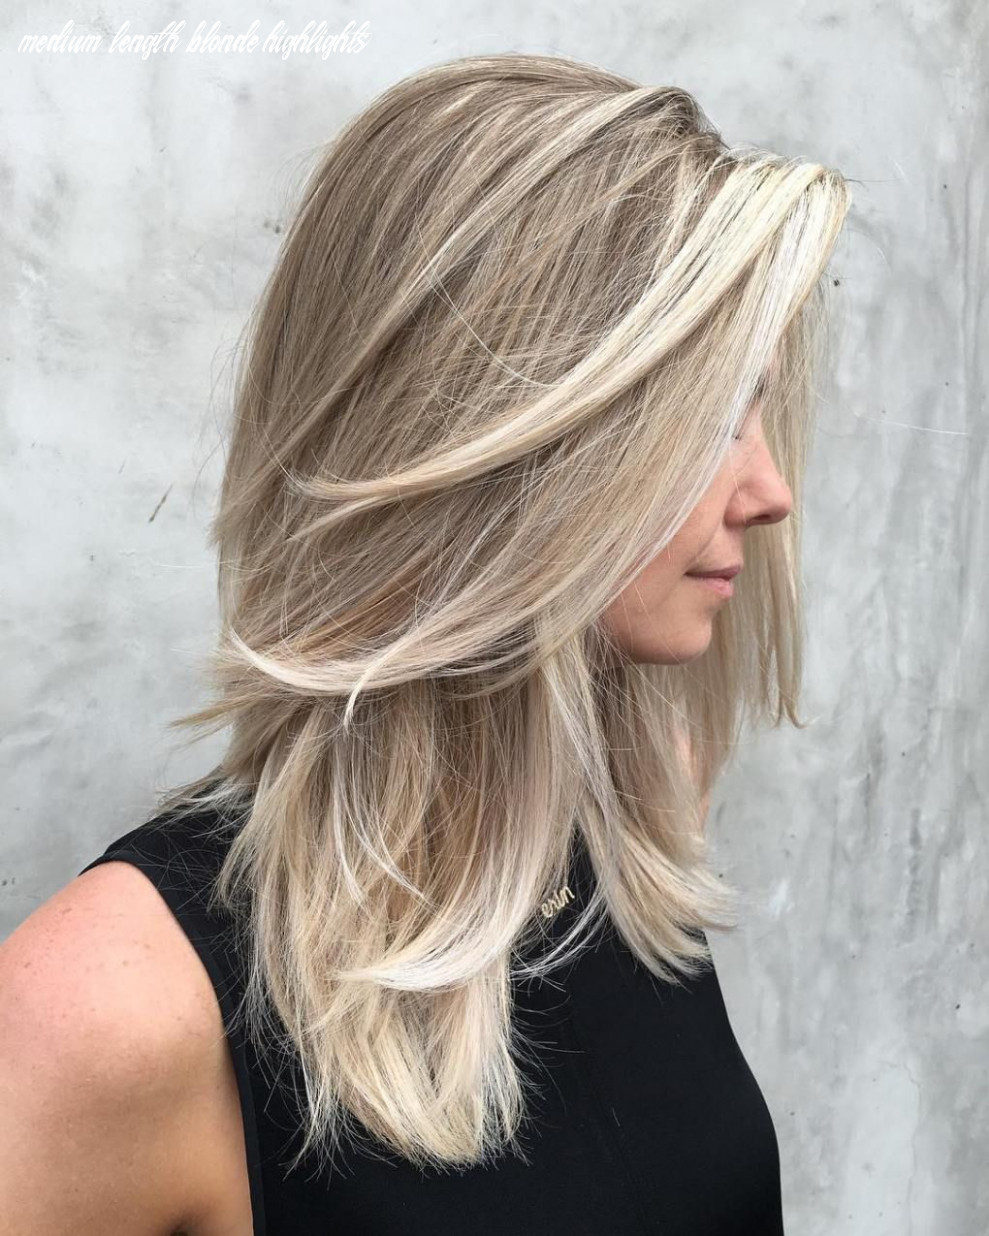 9 beautiful blonde hairstyles to play around with | long thin